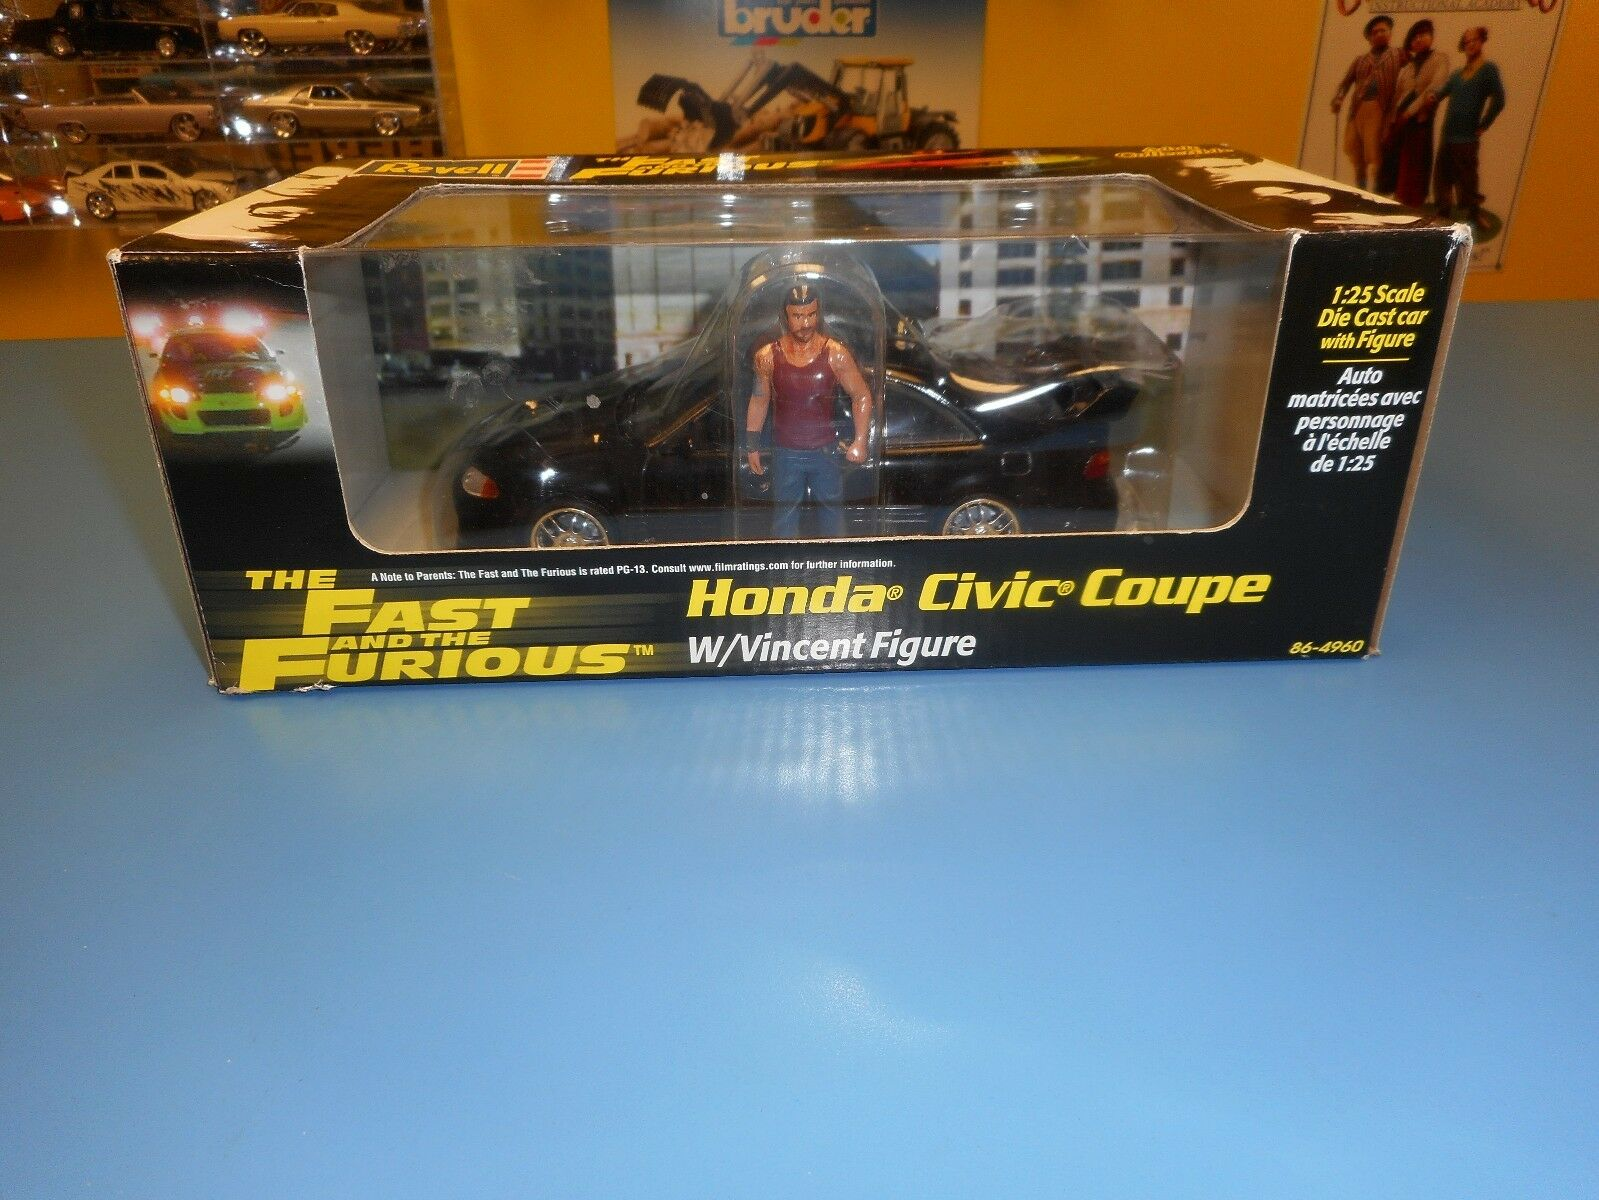 REVELL The Fast & the Furious Honda Civic coupé avec Vincent Figure New in Box